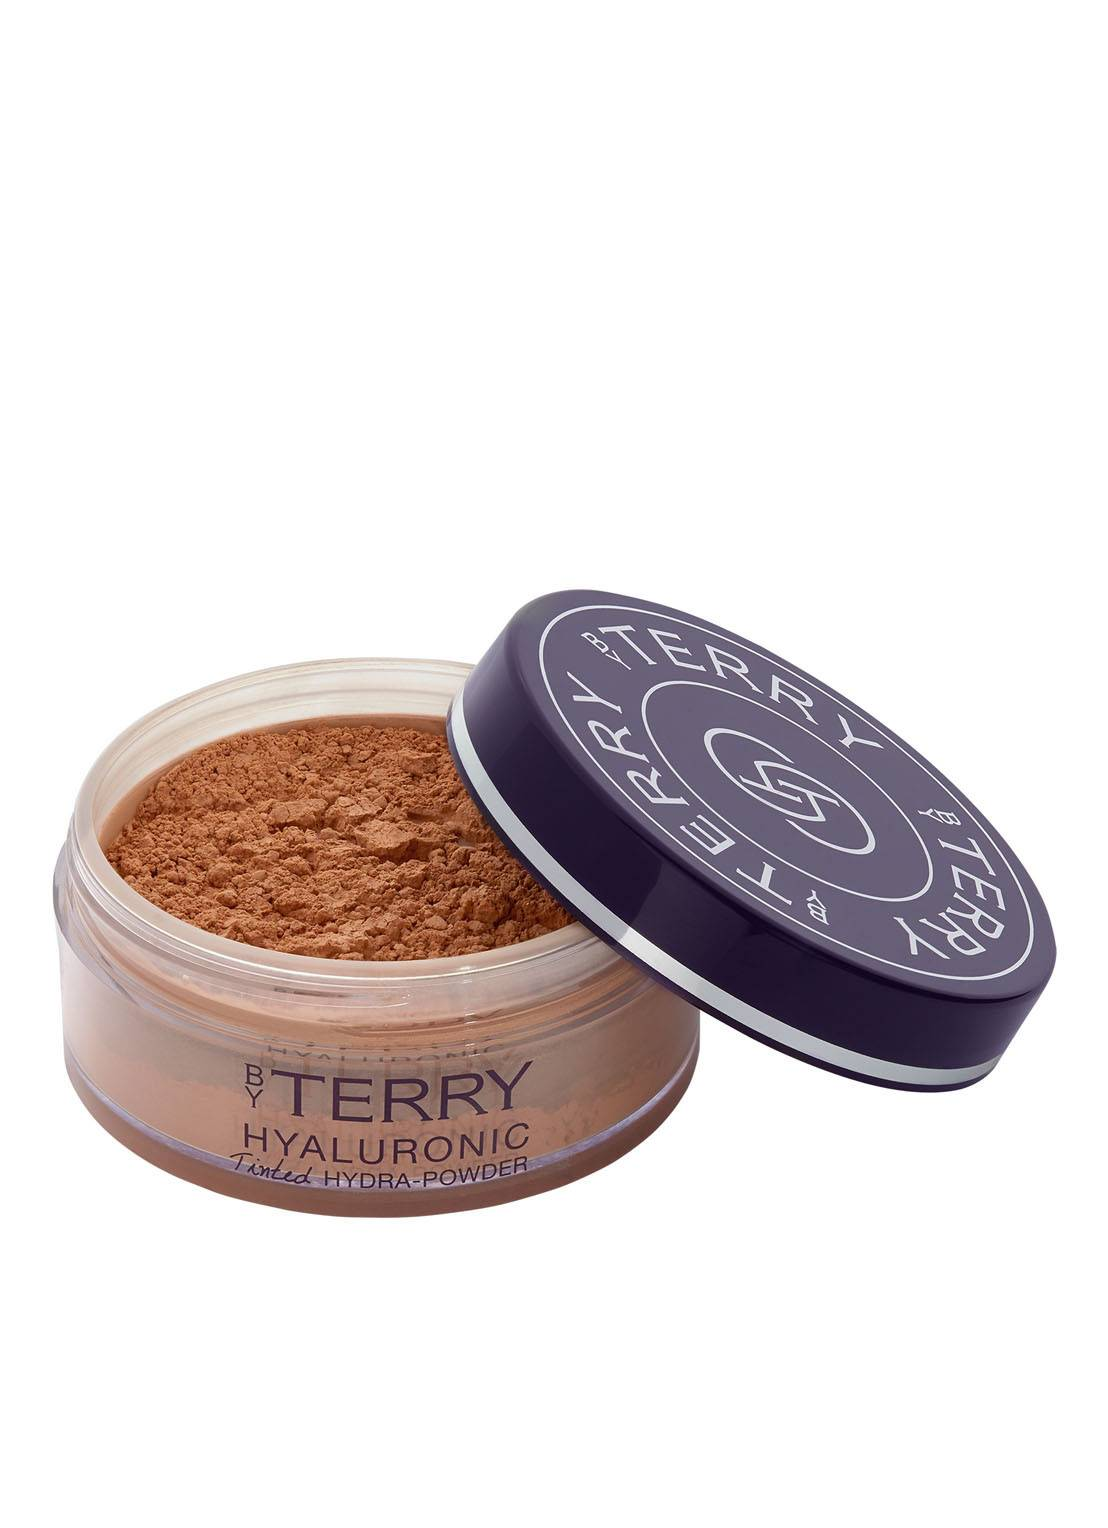 by terry Hyaluronic Tinted Hydra Powder - poudre libre - N600 Dark